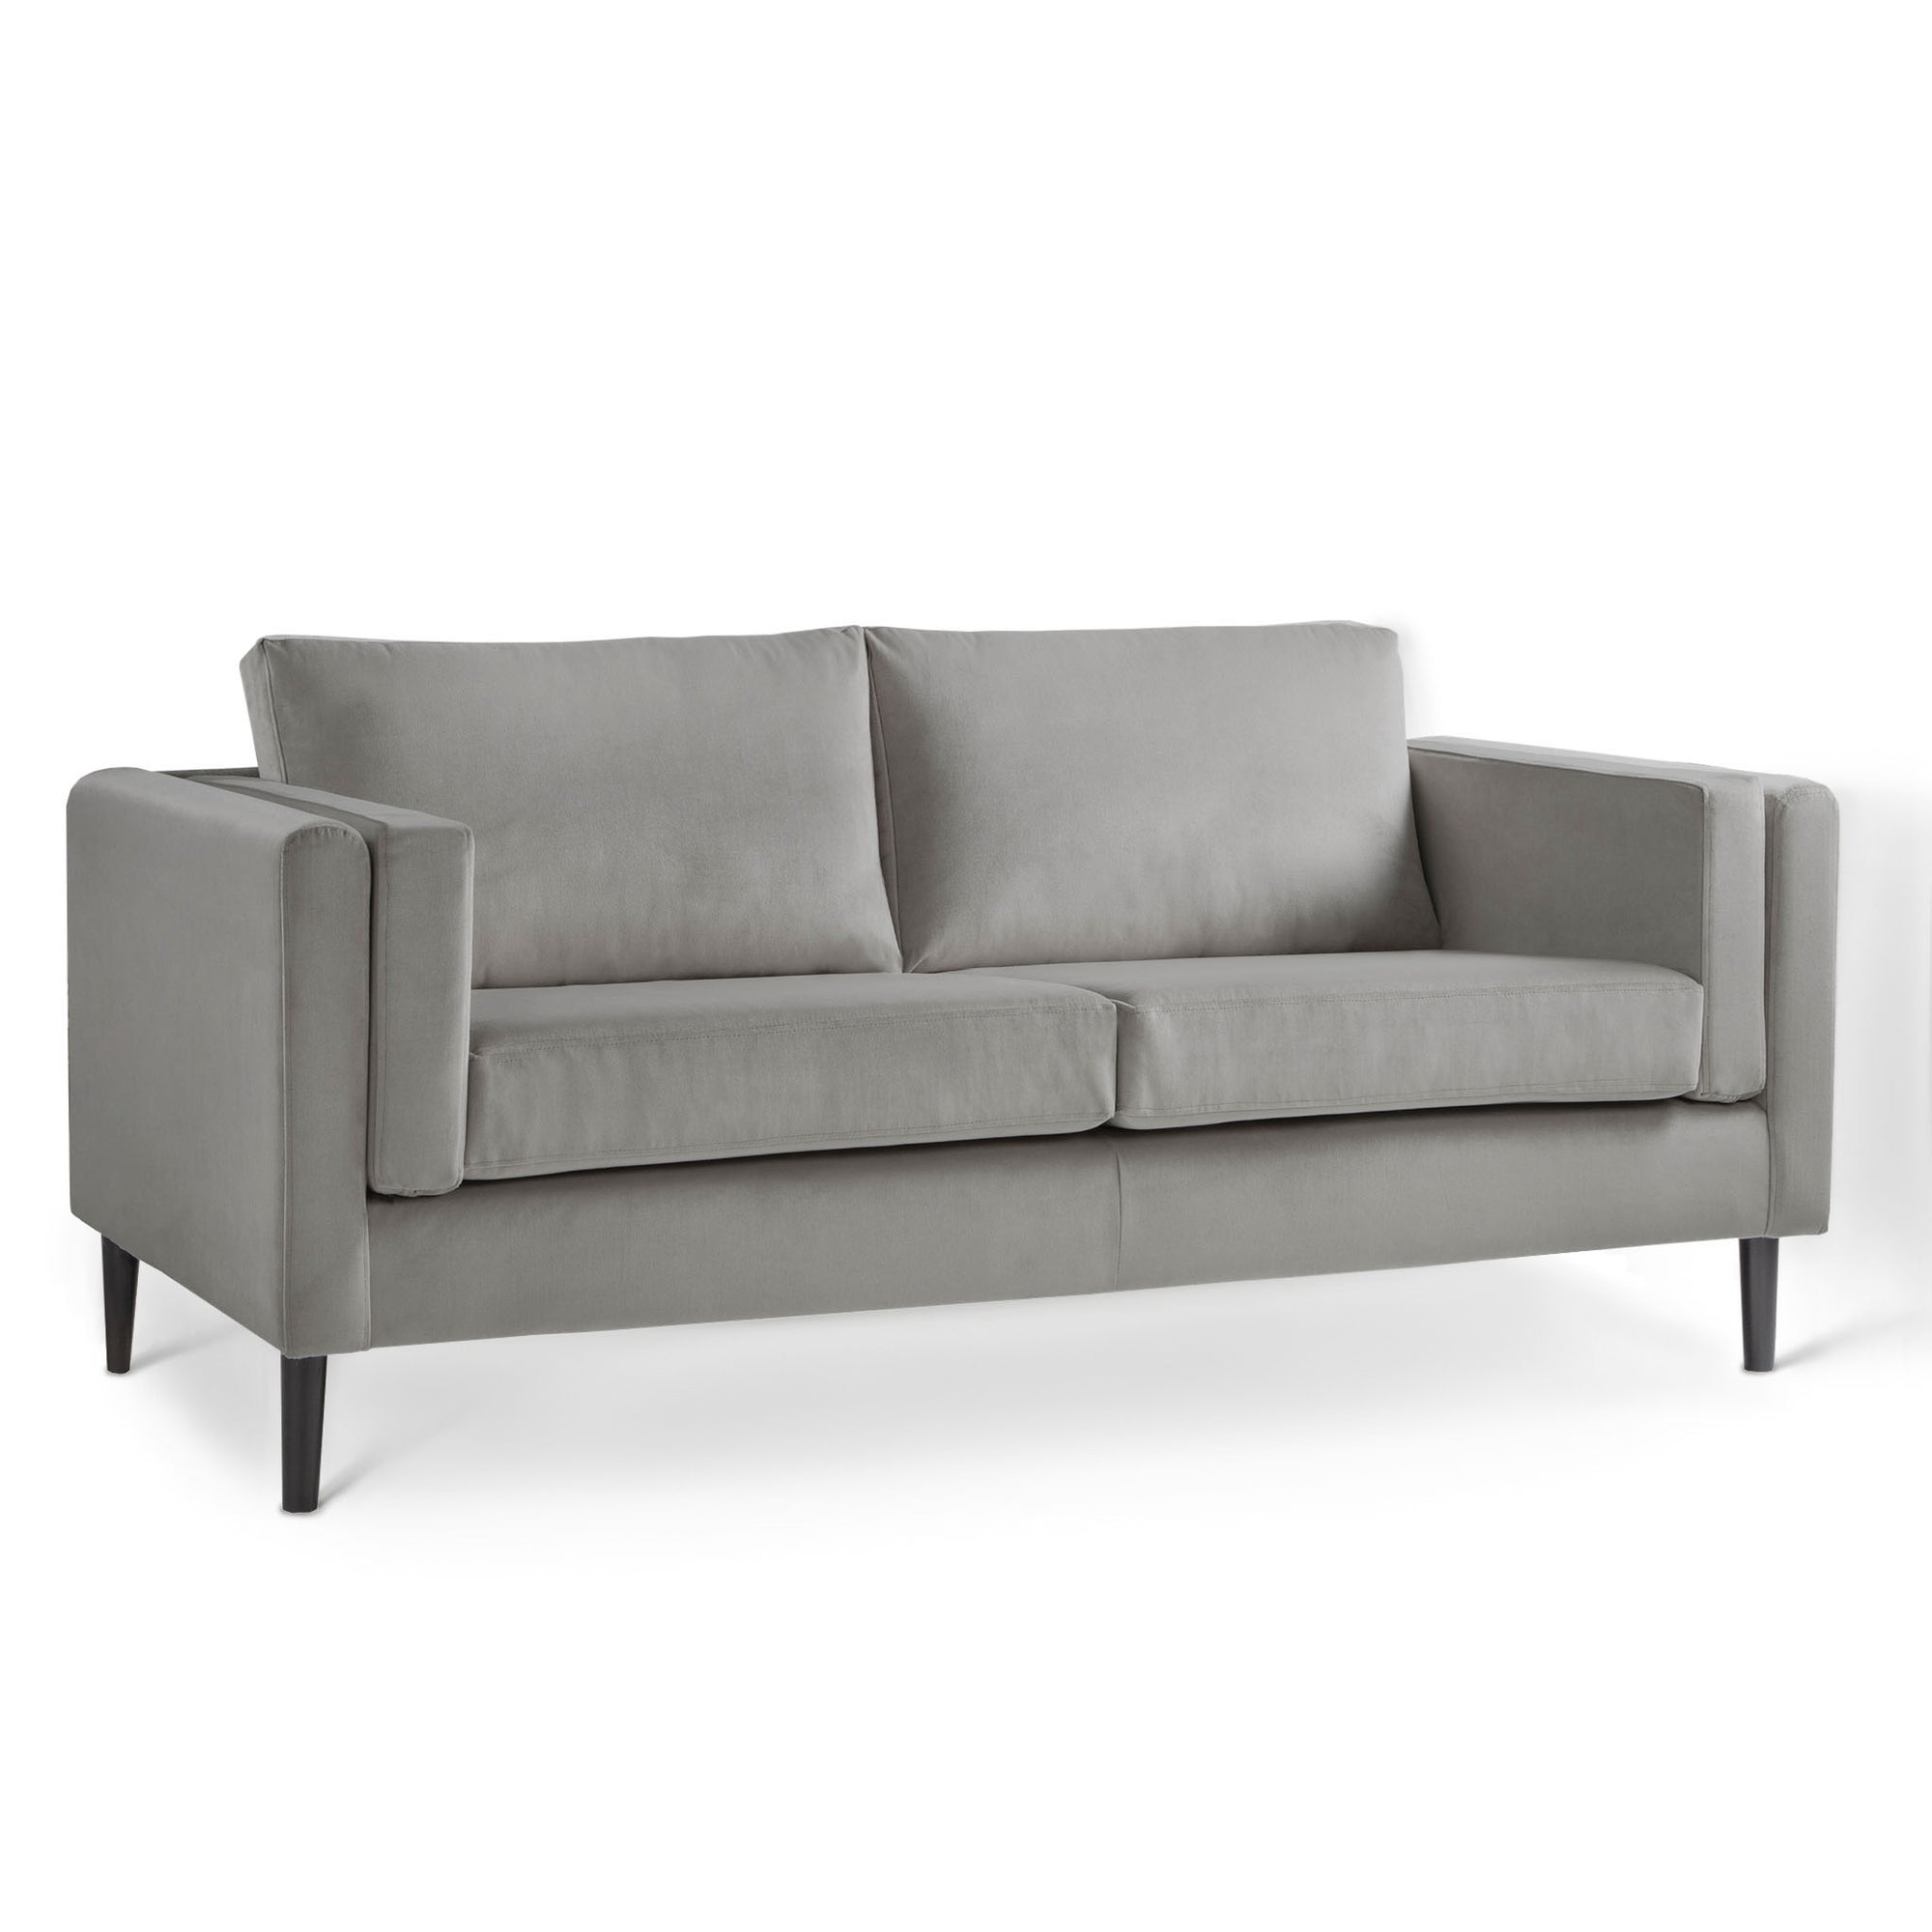 Sandringham Grey Velvet 3 Seater Sofa from Roseland Furniture